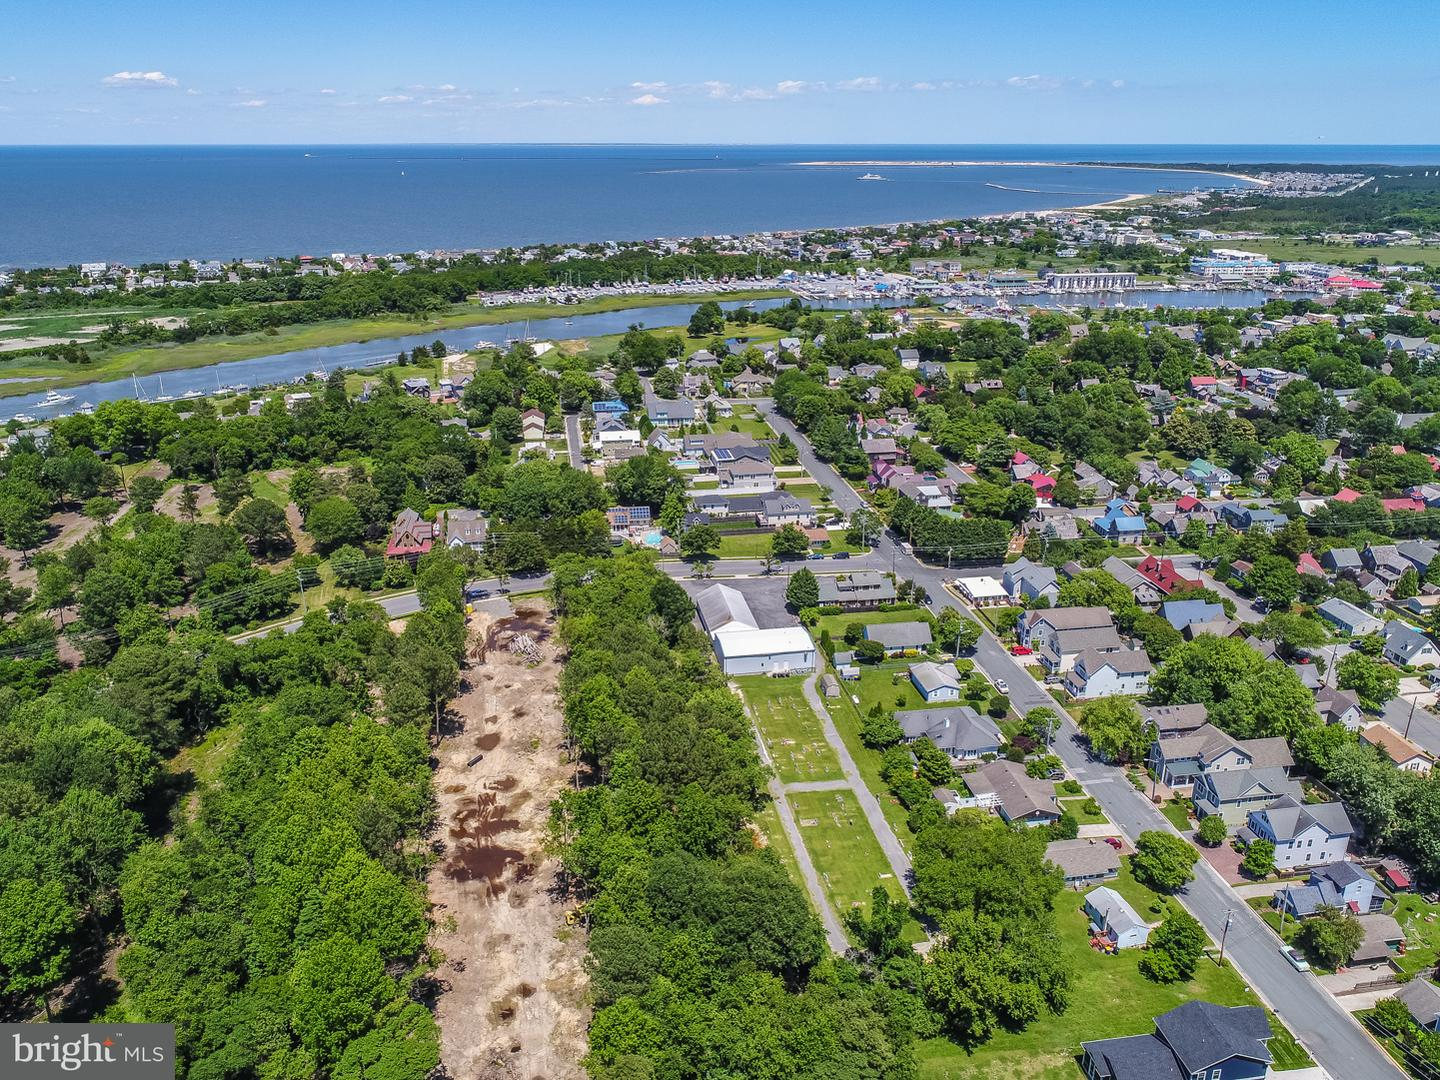 1002047892-300471115587-2018-08-04-07-32-08 Lot 20 Virden Way | Lewes, DE Real Estate For Sale | MLS# 1002047892  - Rehoboth Beach Real Estate - Bryce Lingo and Shaun Tull REALTORS, Rehoboth Beach, Delaware